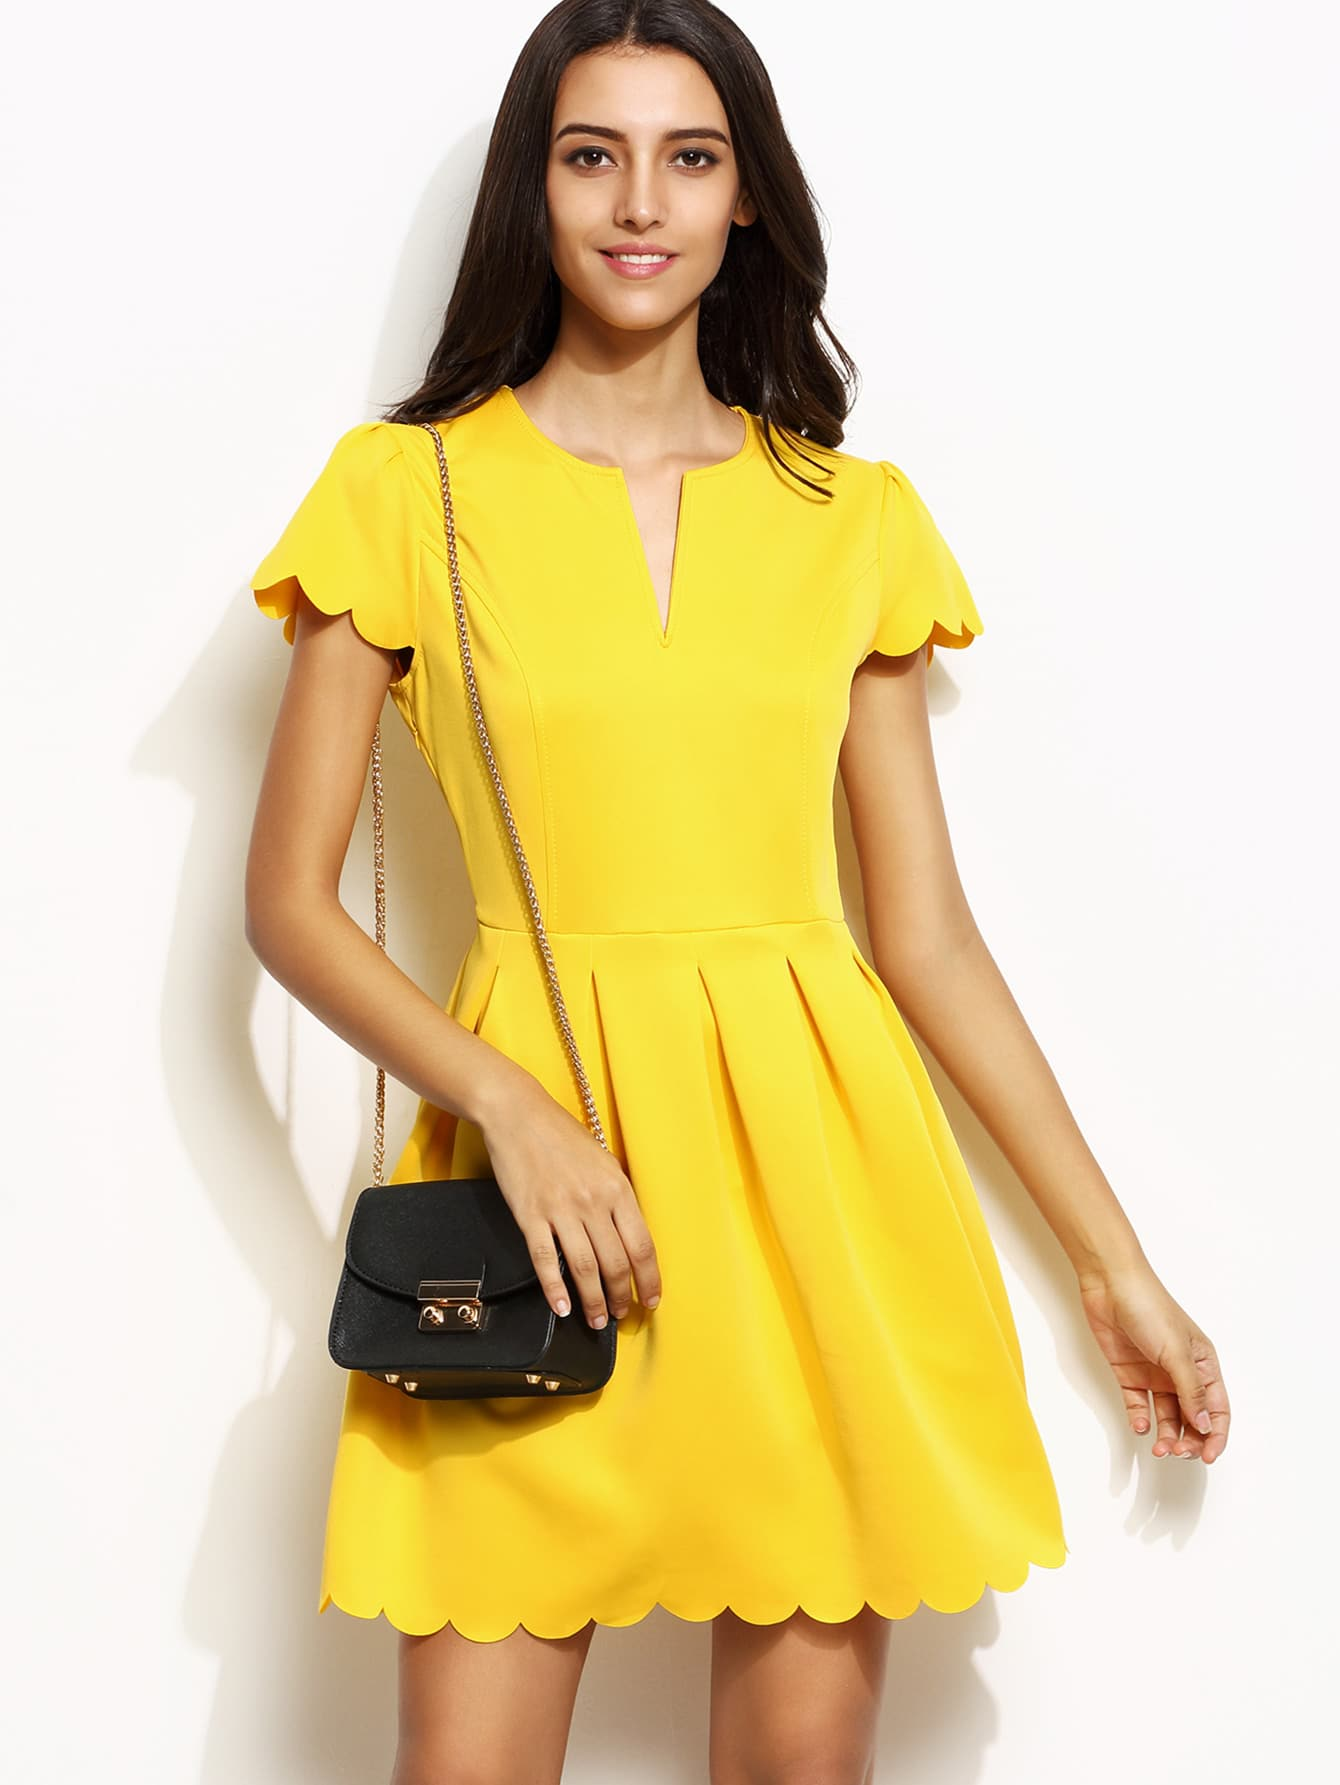 Yellow Scalloped Notch Neck A Line DressYellow Scalloped Notch Neck A Line Dress<br><br>color: Yellow<br>size: L,M,S